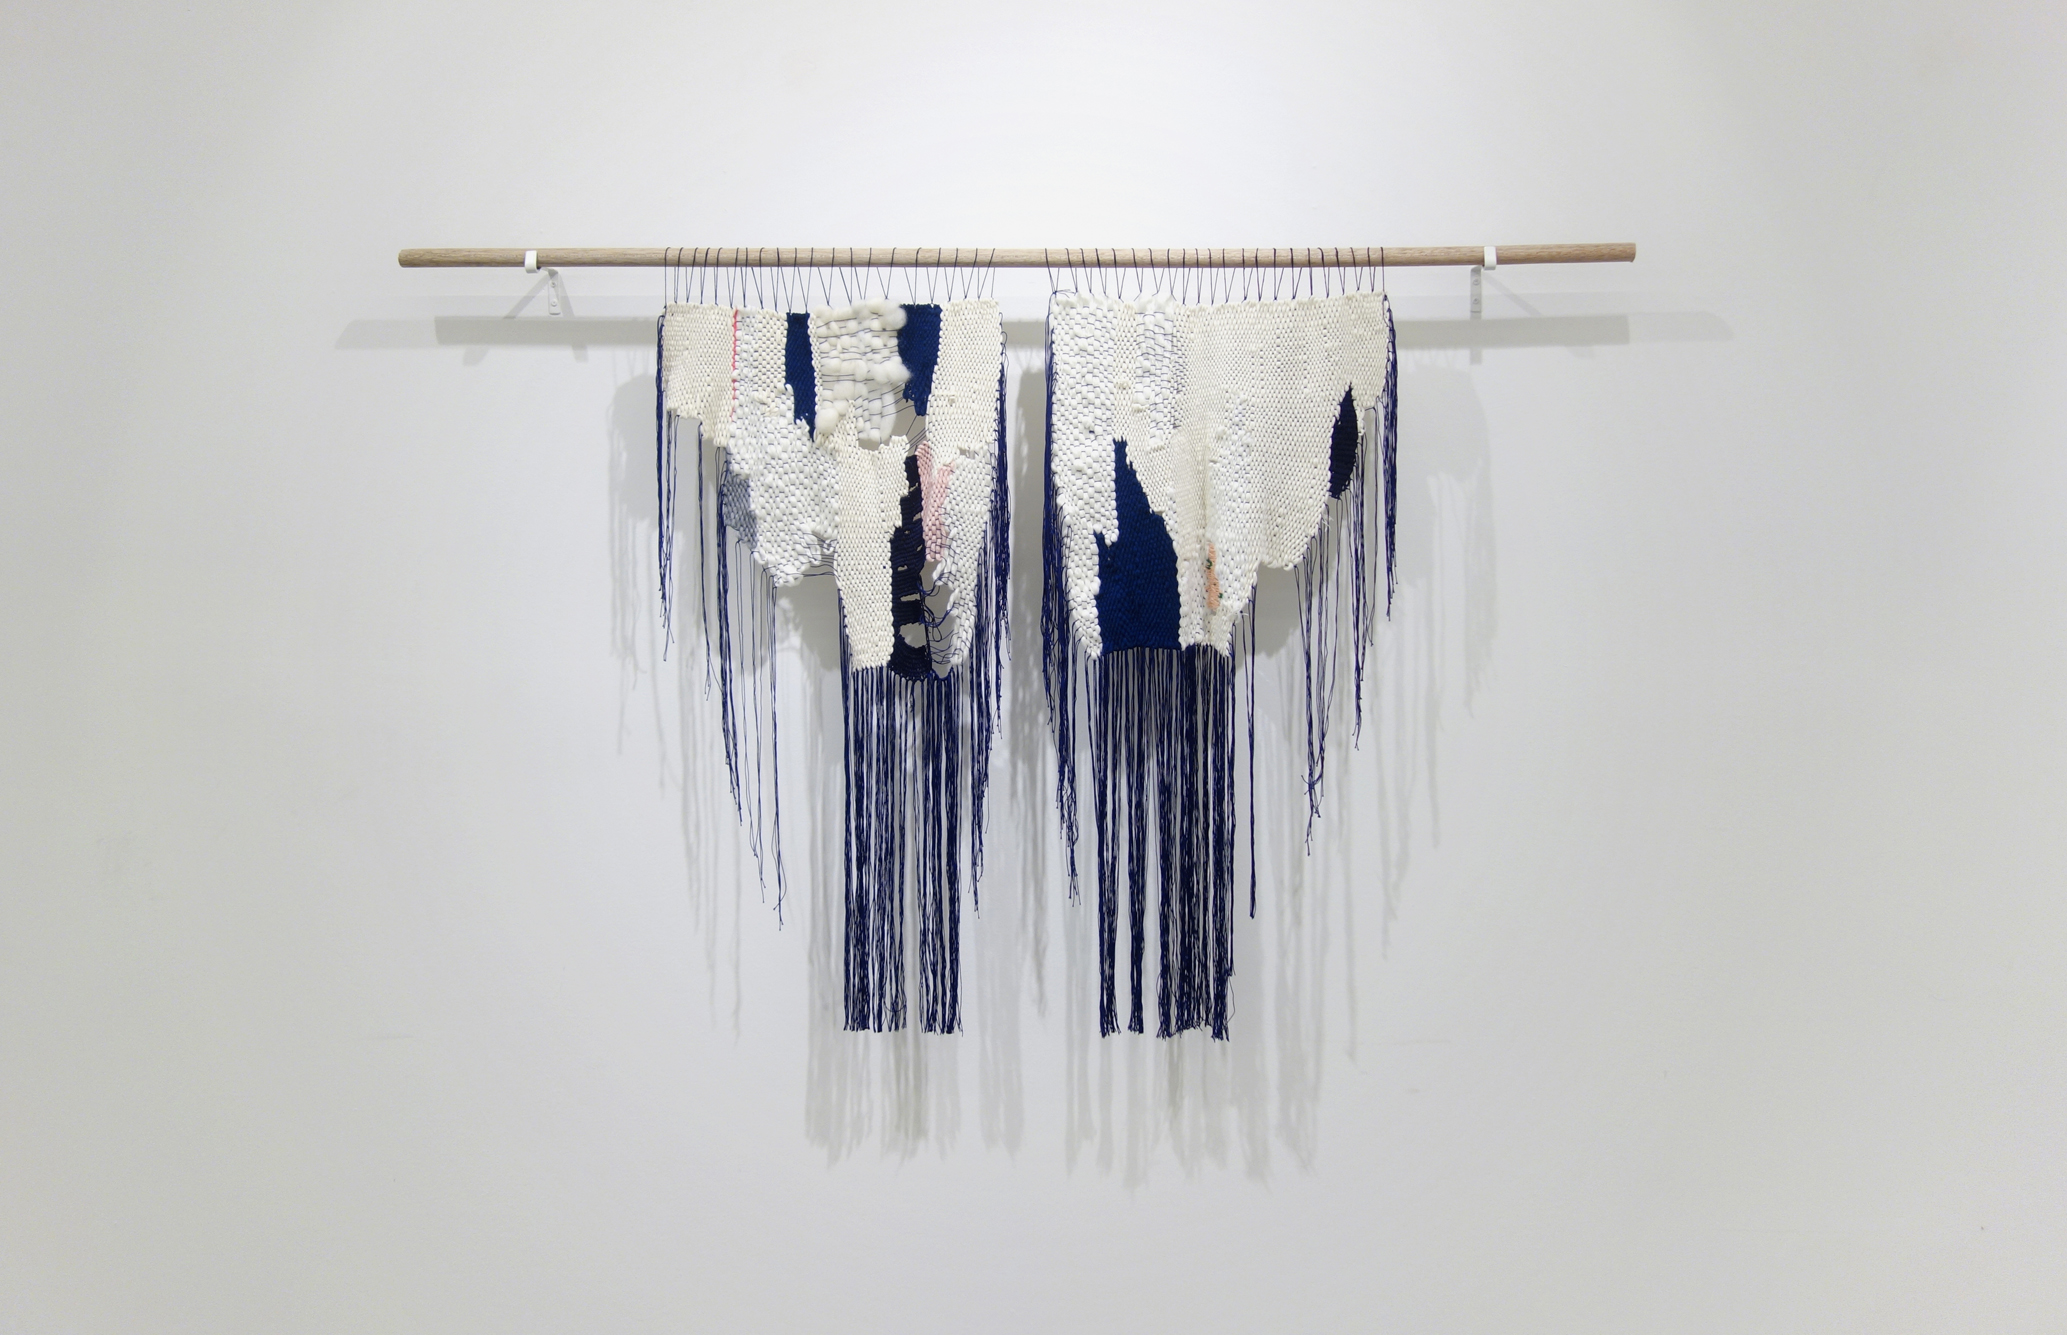 Izziyana Suhaimi, Soft Places, 2015, Cotton thread, wool woven and embroided, H89 x W44 cm (L), H89 x W43 cm (R).jpg